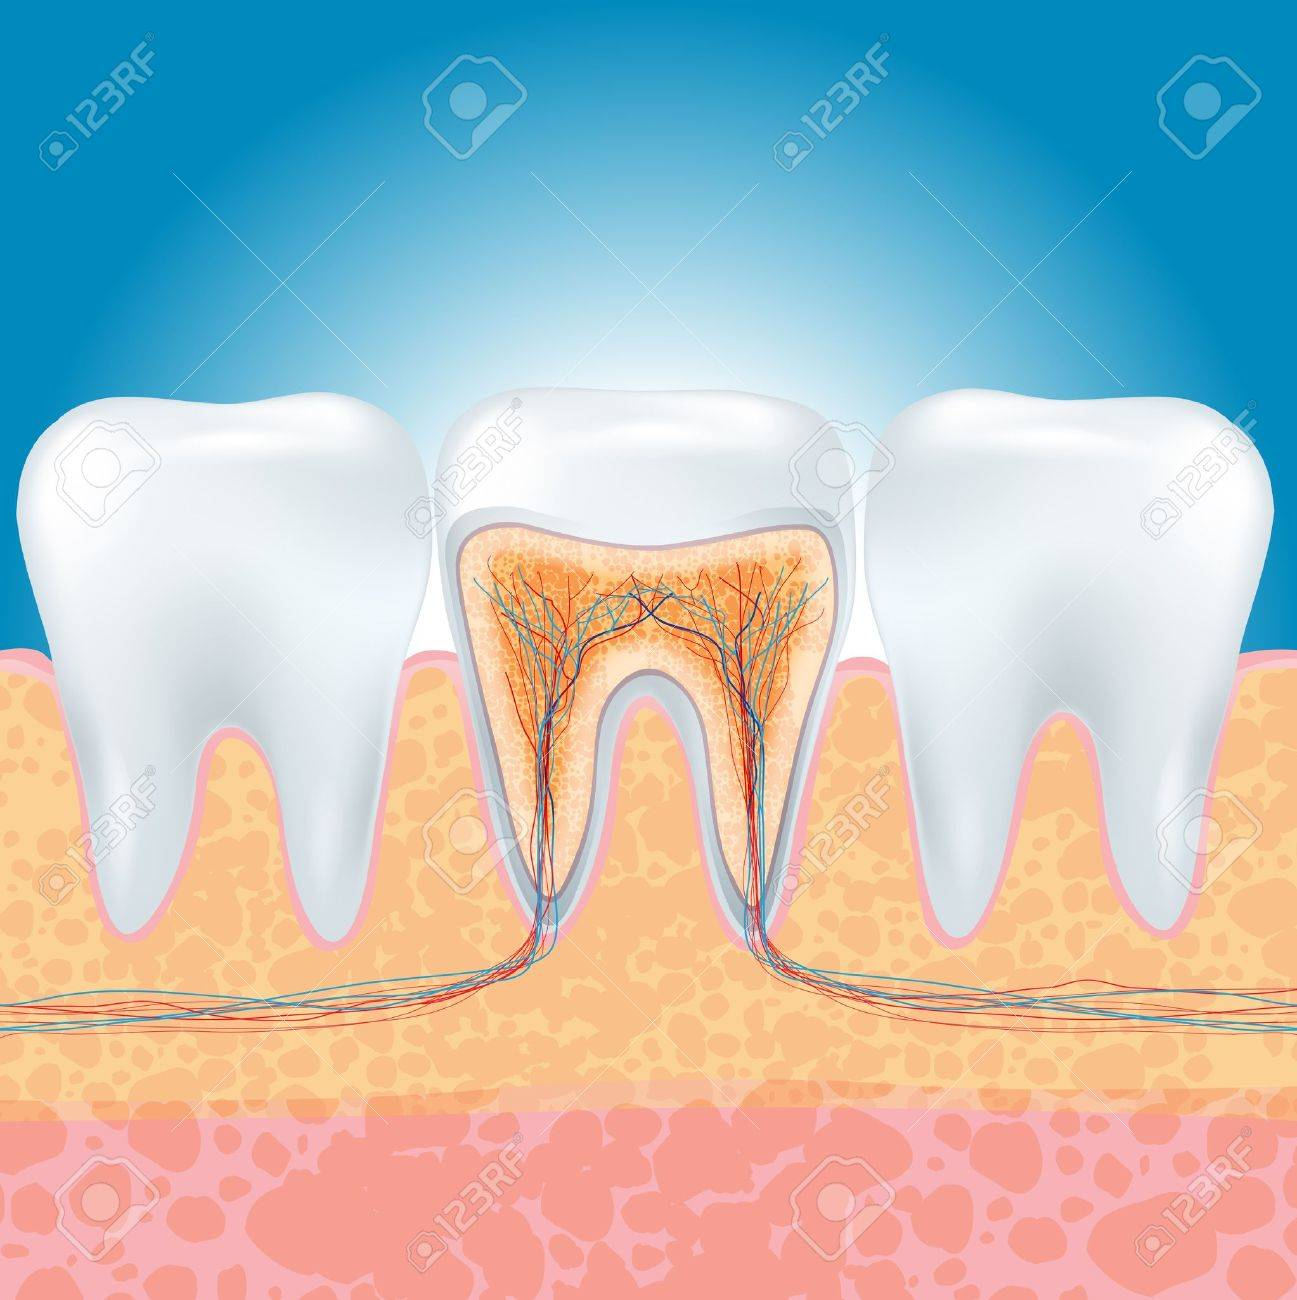 illustration of tooth section. Stock Vector - 20732075